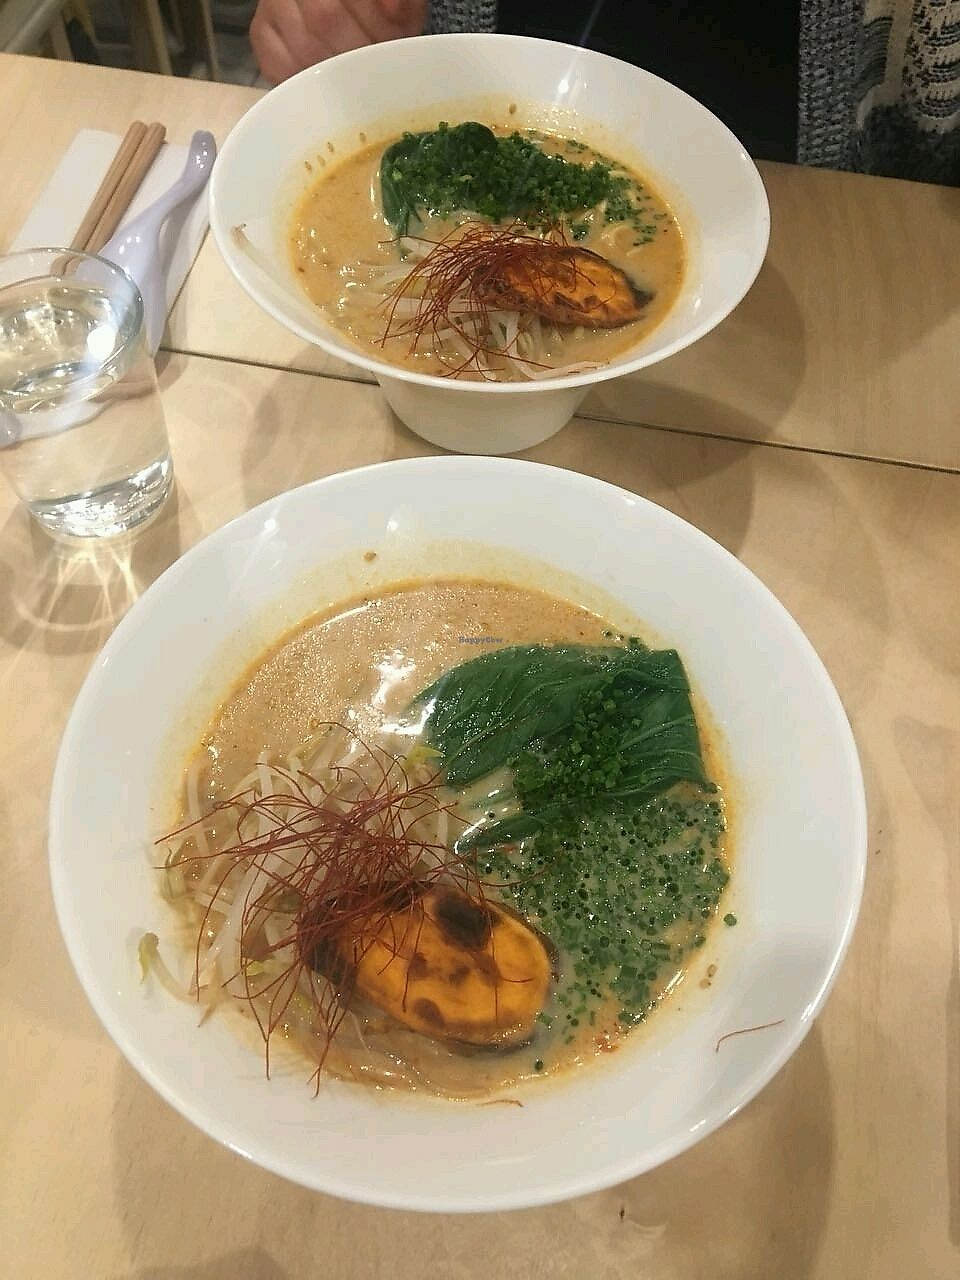 "Photo of Vegan Ramen Shop  by <a href=""/members/profile/Liss_33"">Liss_33</a> <br/>Spicy Miso Ramen <br/> September 24, 2017  - <a href='/contact/abuse/image/56577/307914'>Report</a>"